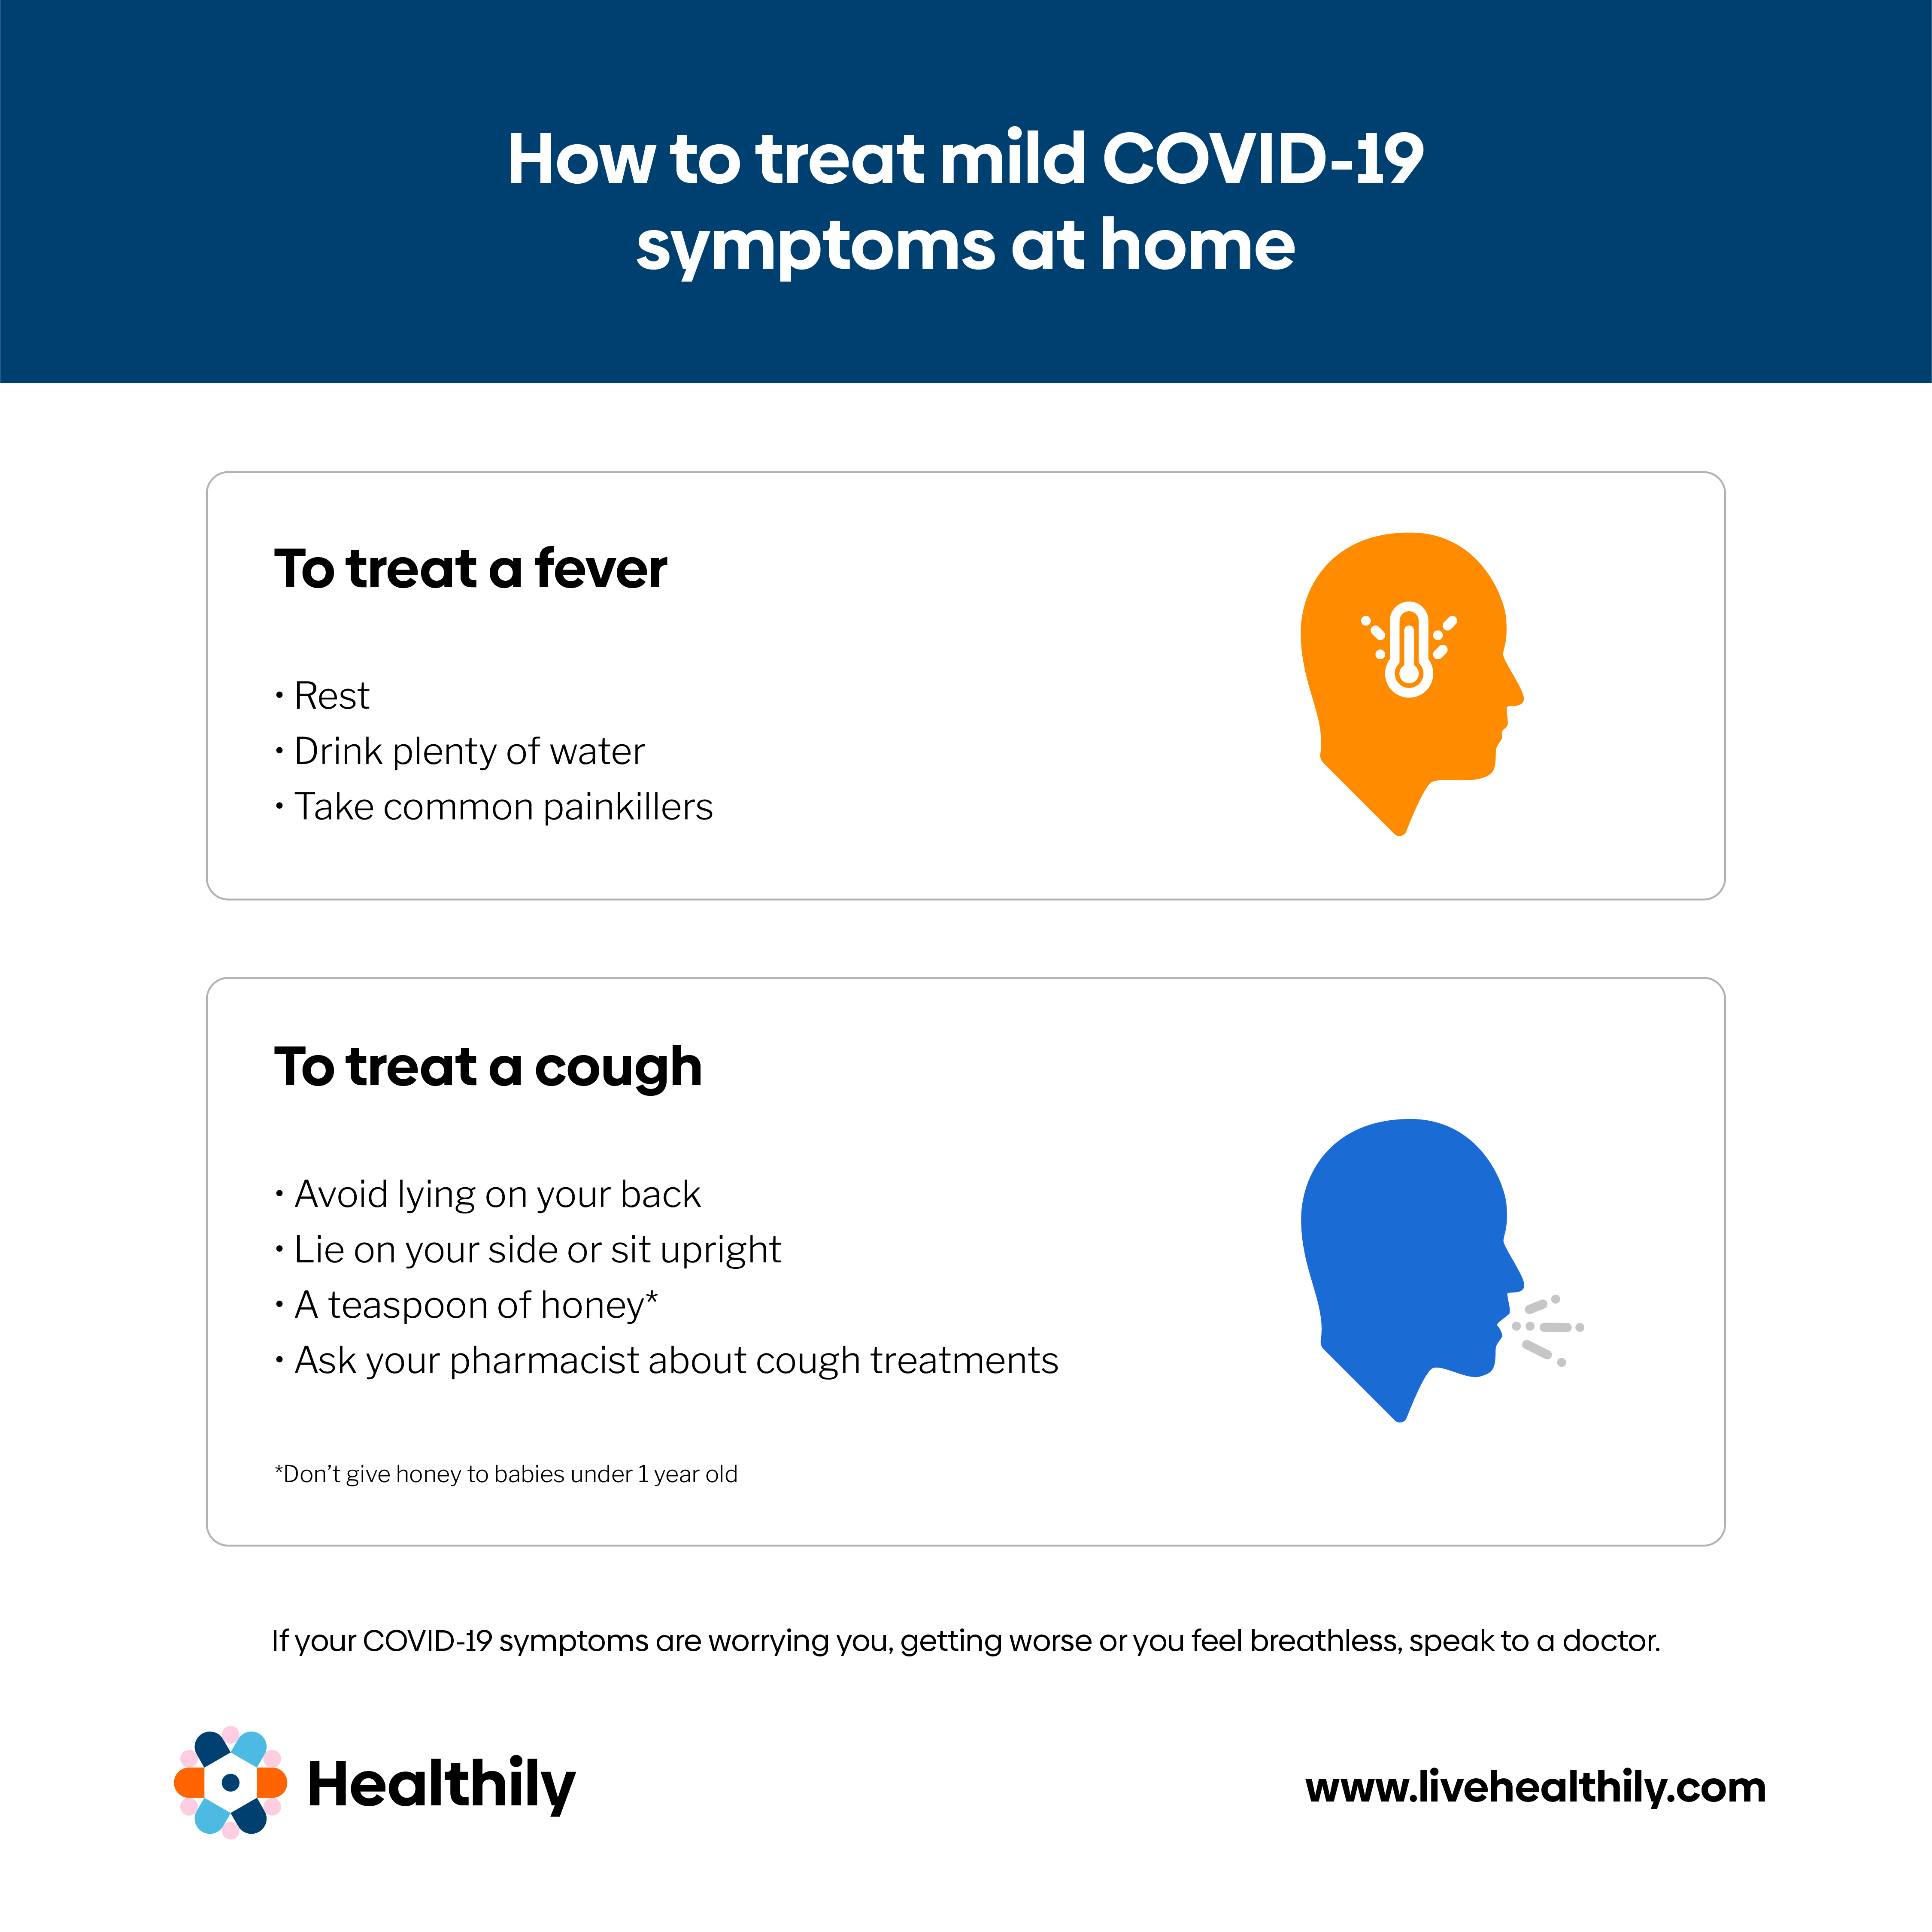 How to treat mild COVID-19 symptoms at home